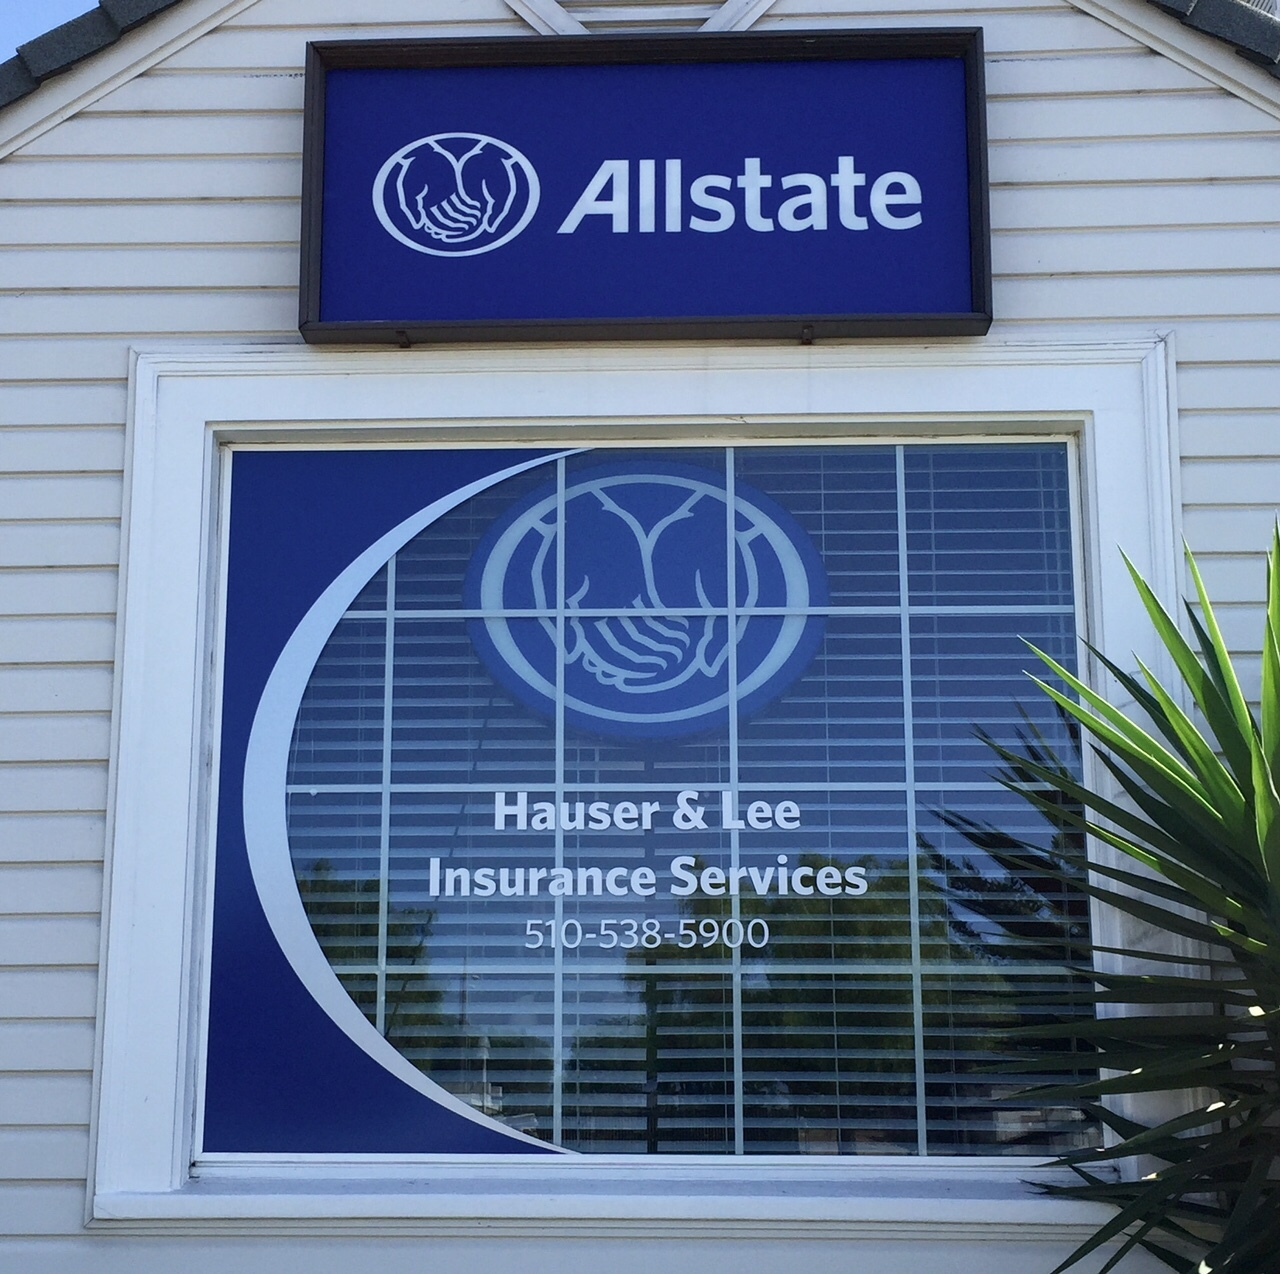 Hauser & Lee Ins Services: Allstate Insurance image 3